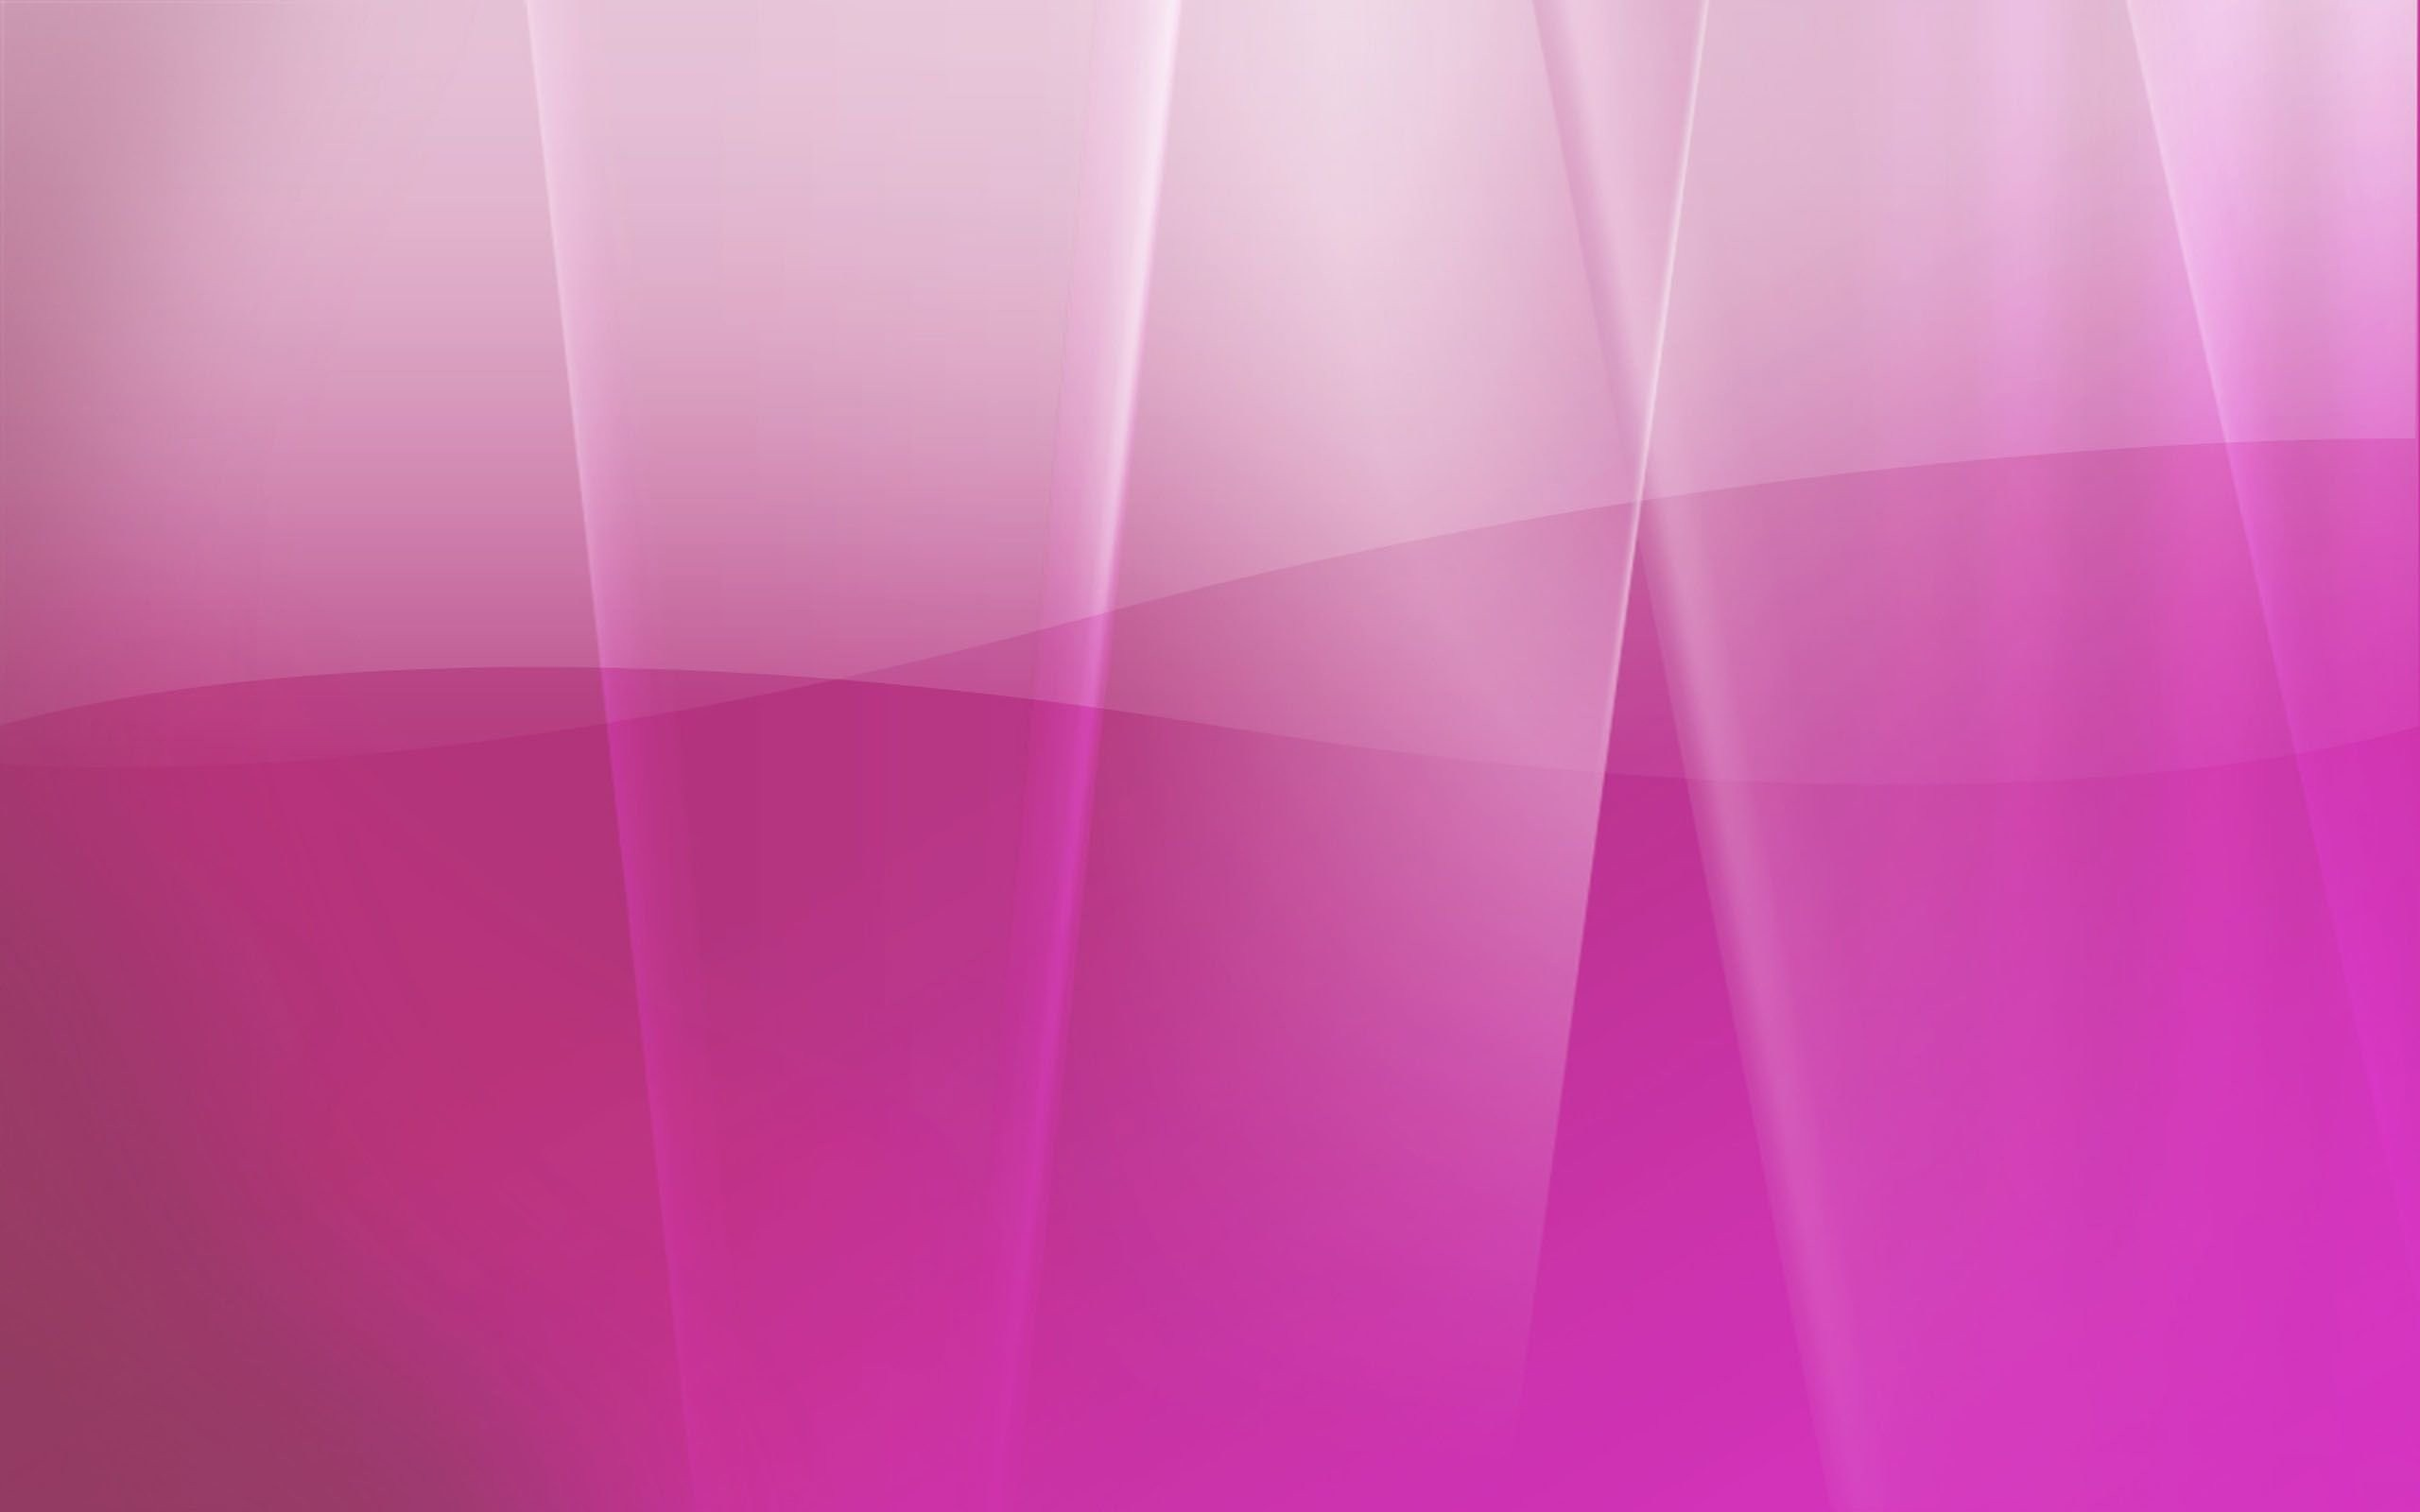 Cute Pinkish Wallpapers Girly Background 183 ① Download Free Wallpapers For Desktop